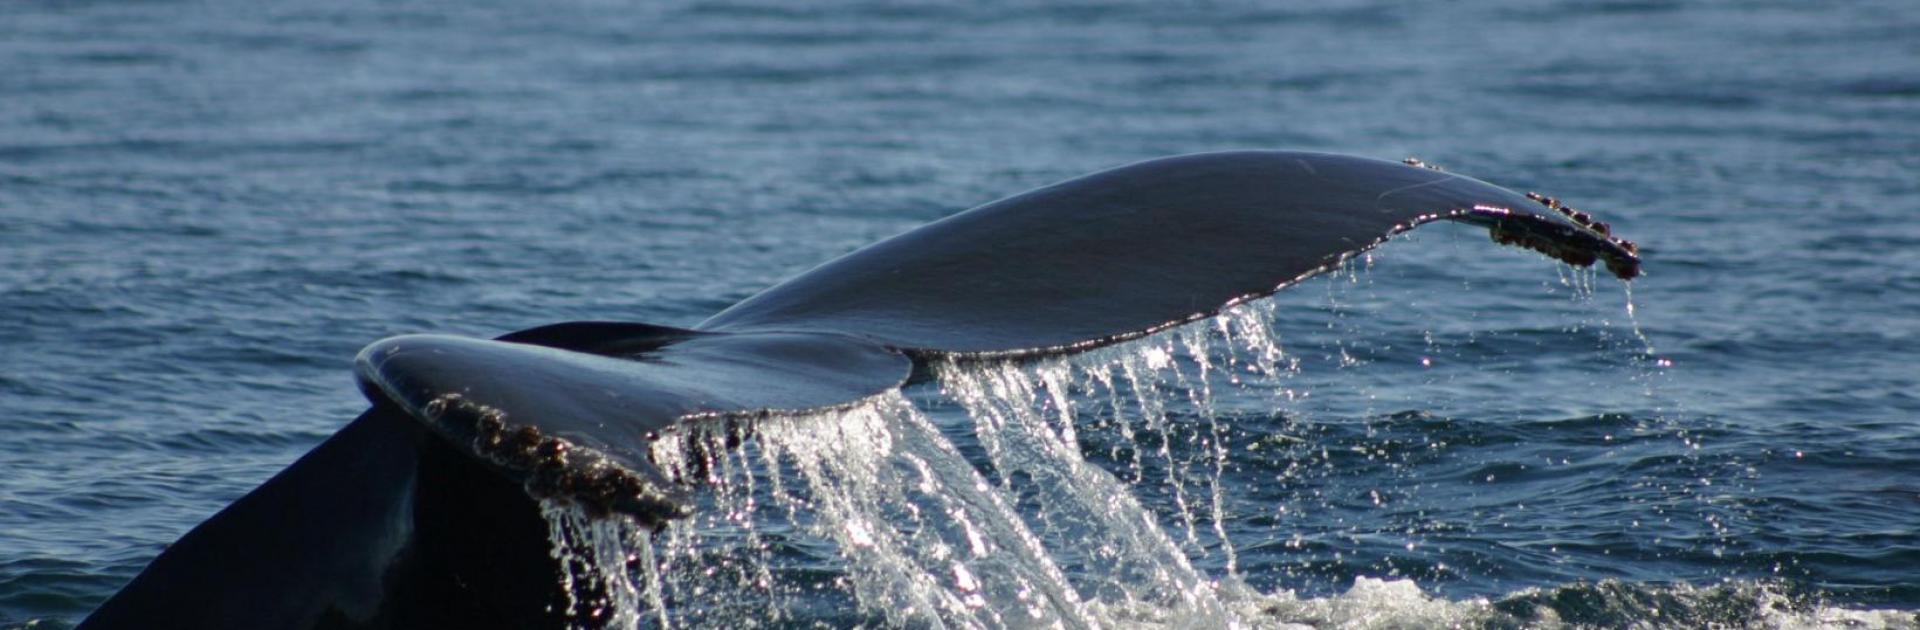 A whale's tail breaches the ocean's surface. Photo by Helen Bailey